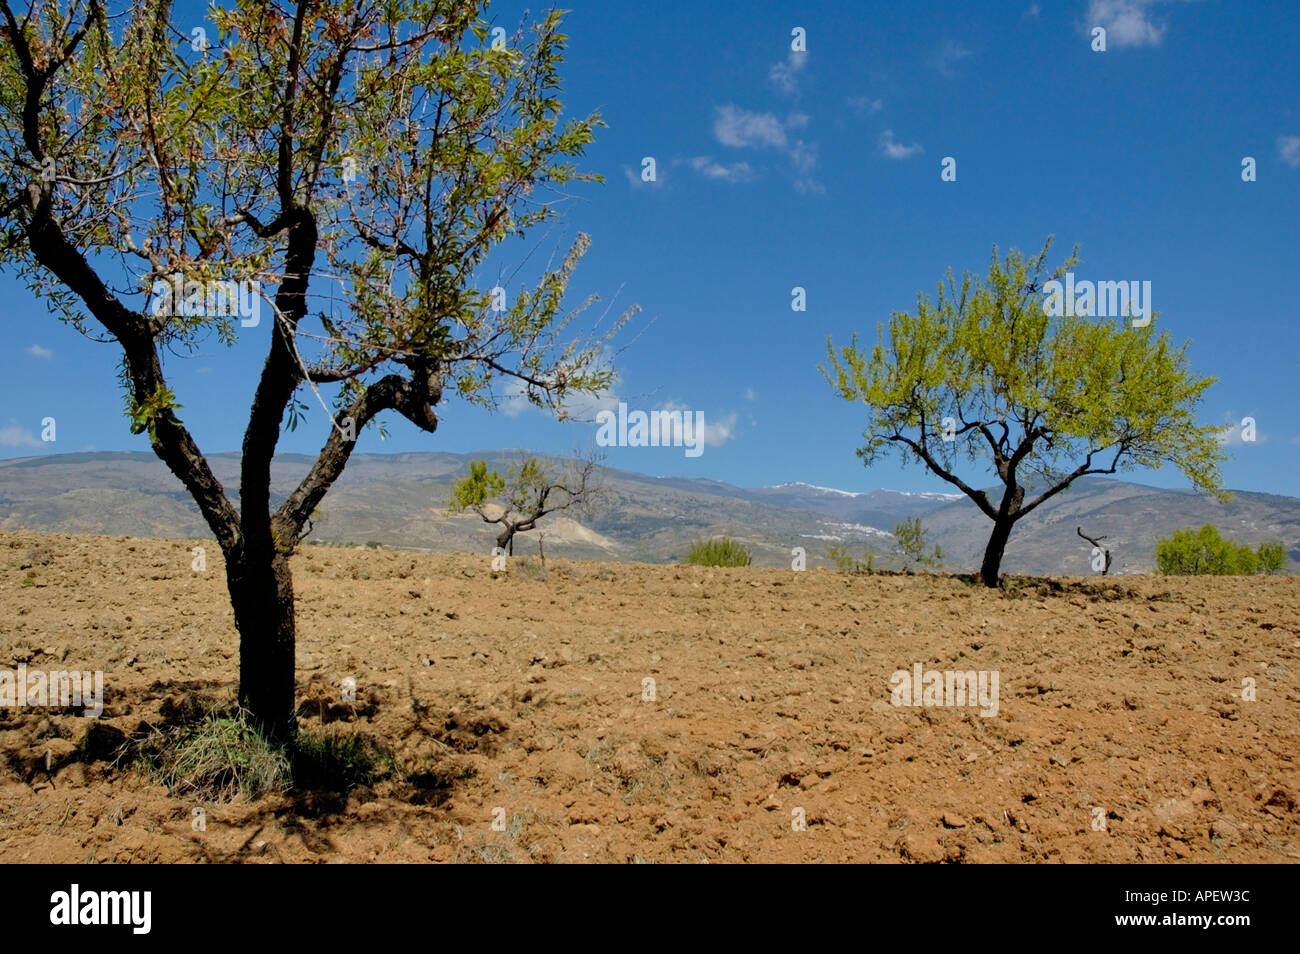 Andalusia, Spain - Fruit trees in a ploughed field the Alpujarras Mountains near Granada, Andalucia - Stock Image